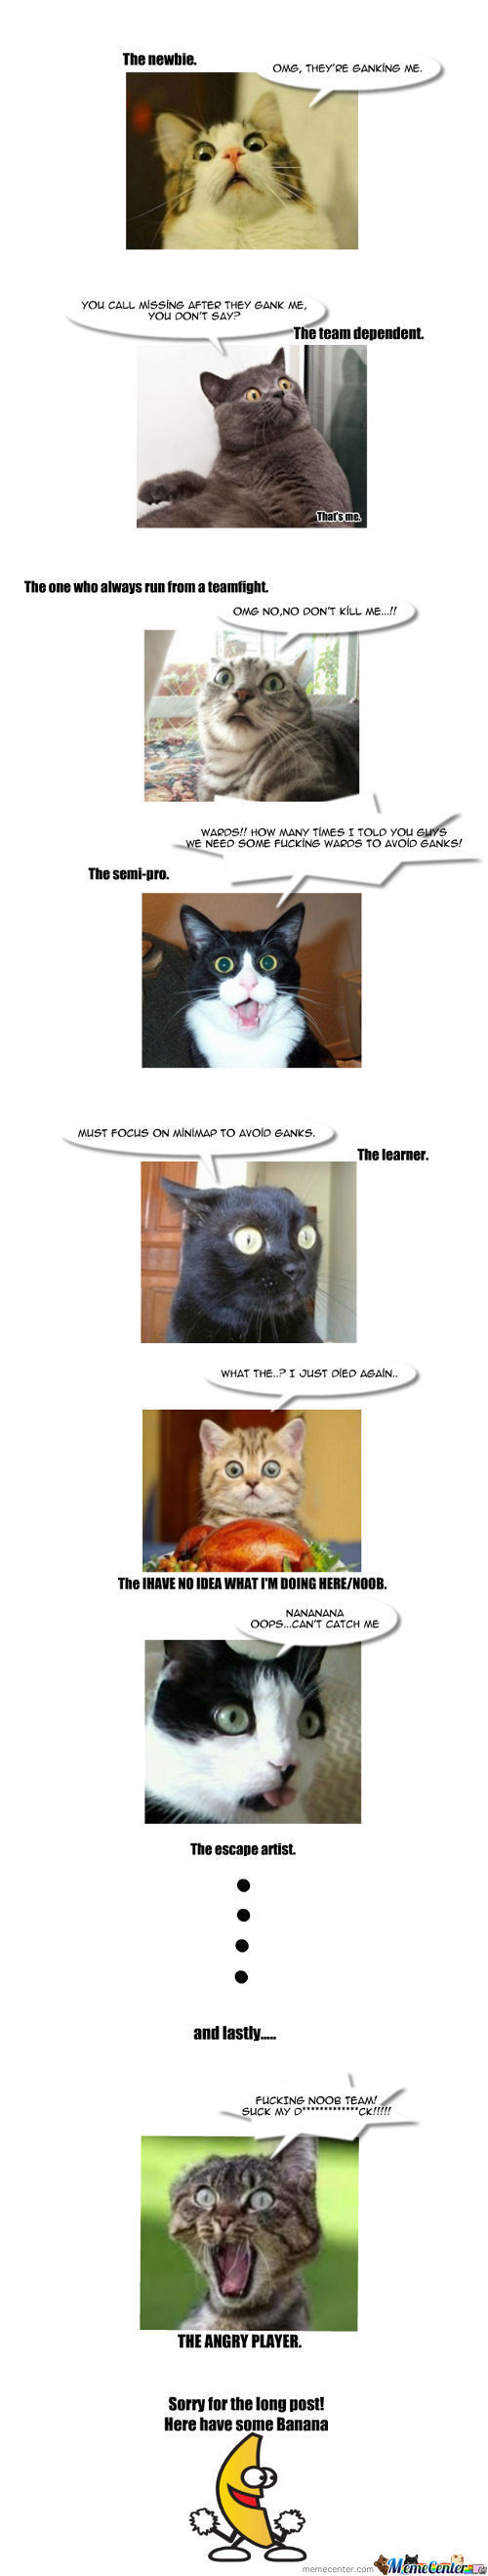 The Internet Cat Reaction When Playing Dota/hon